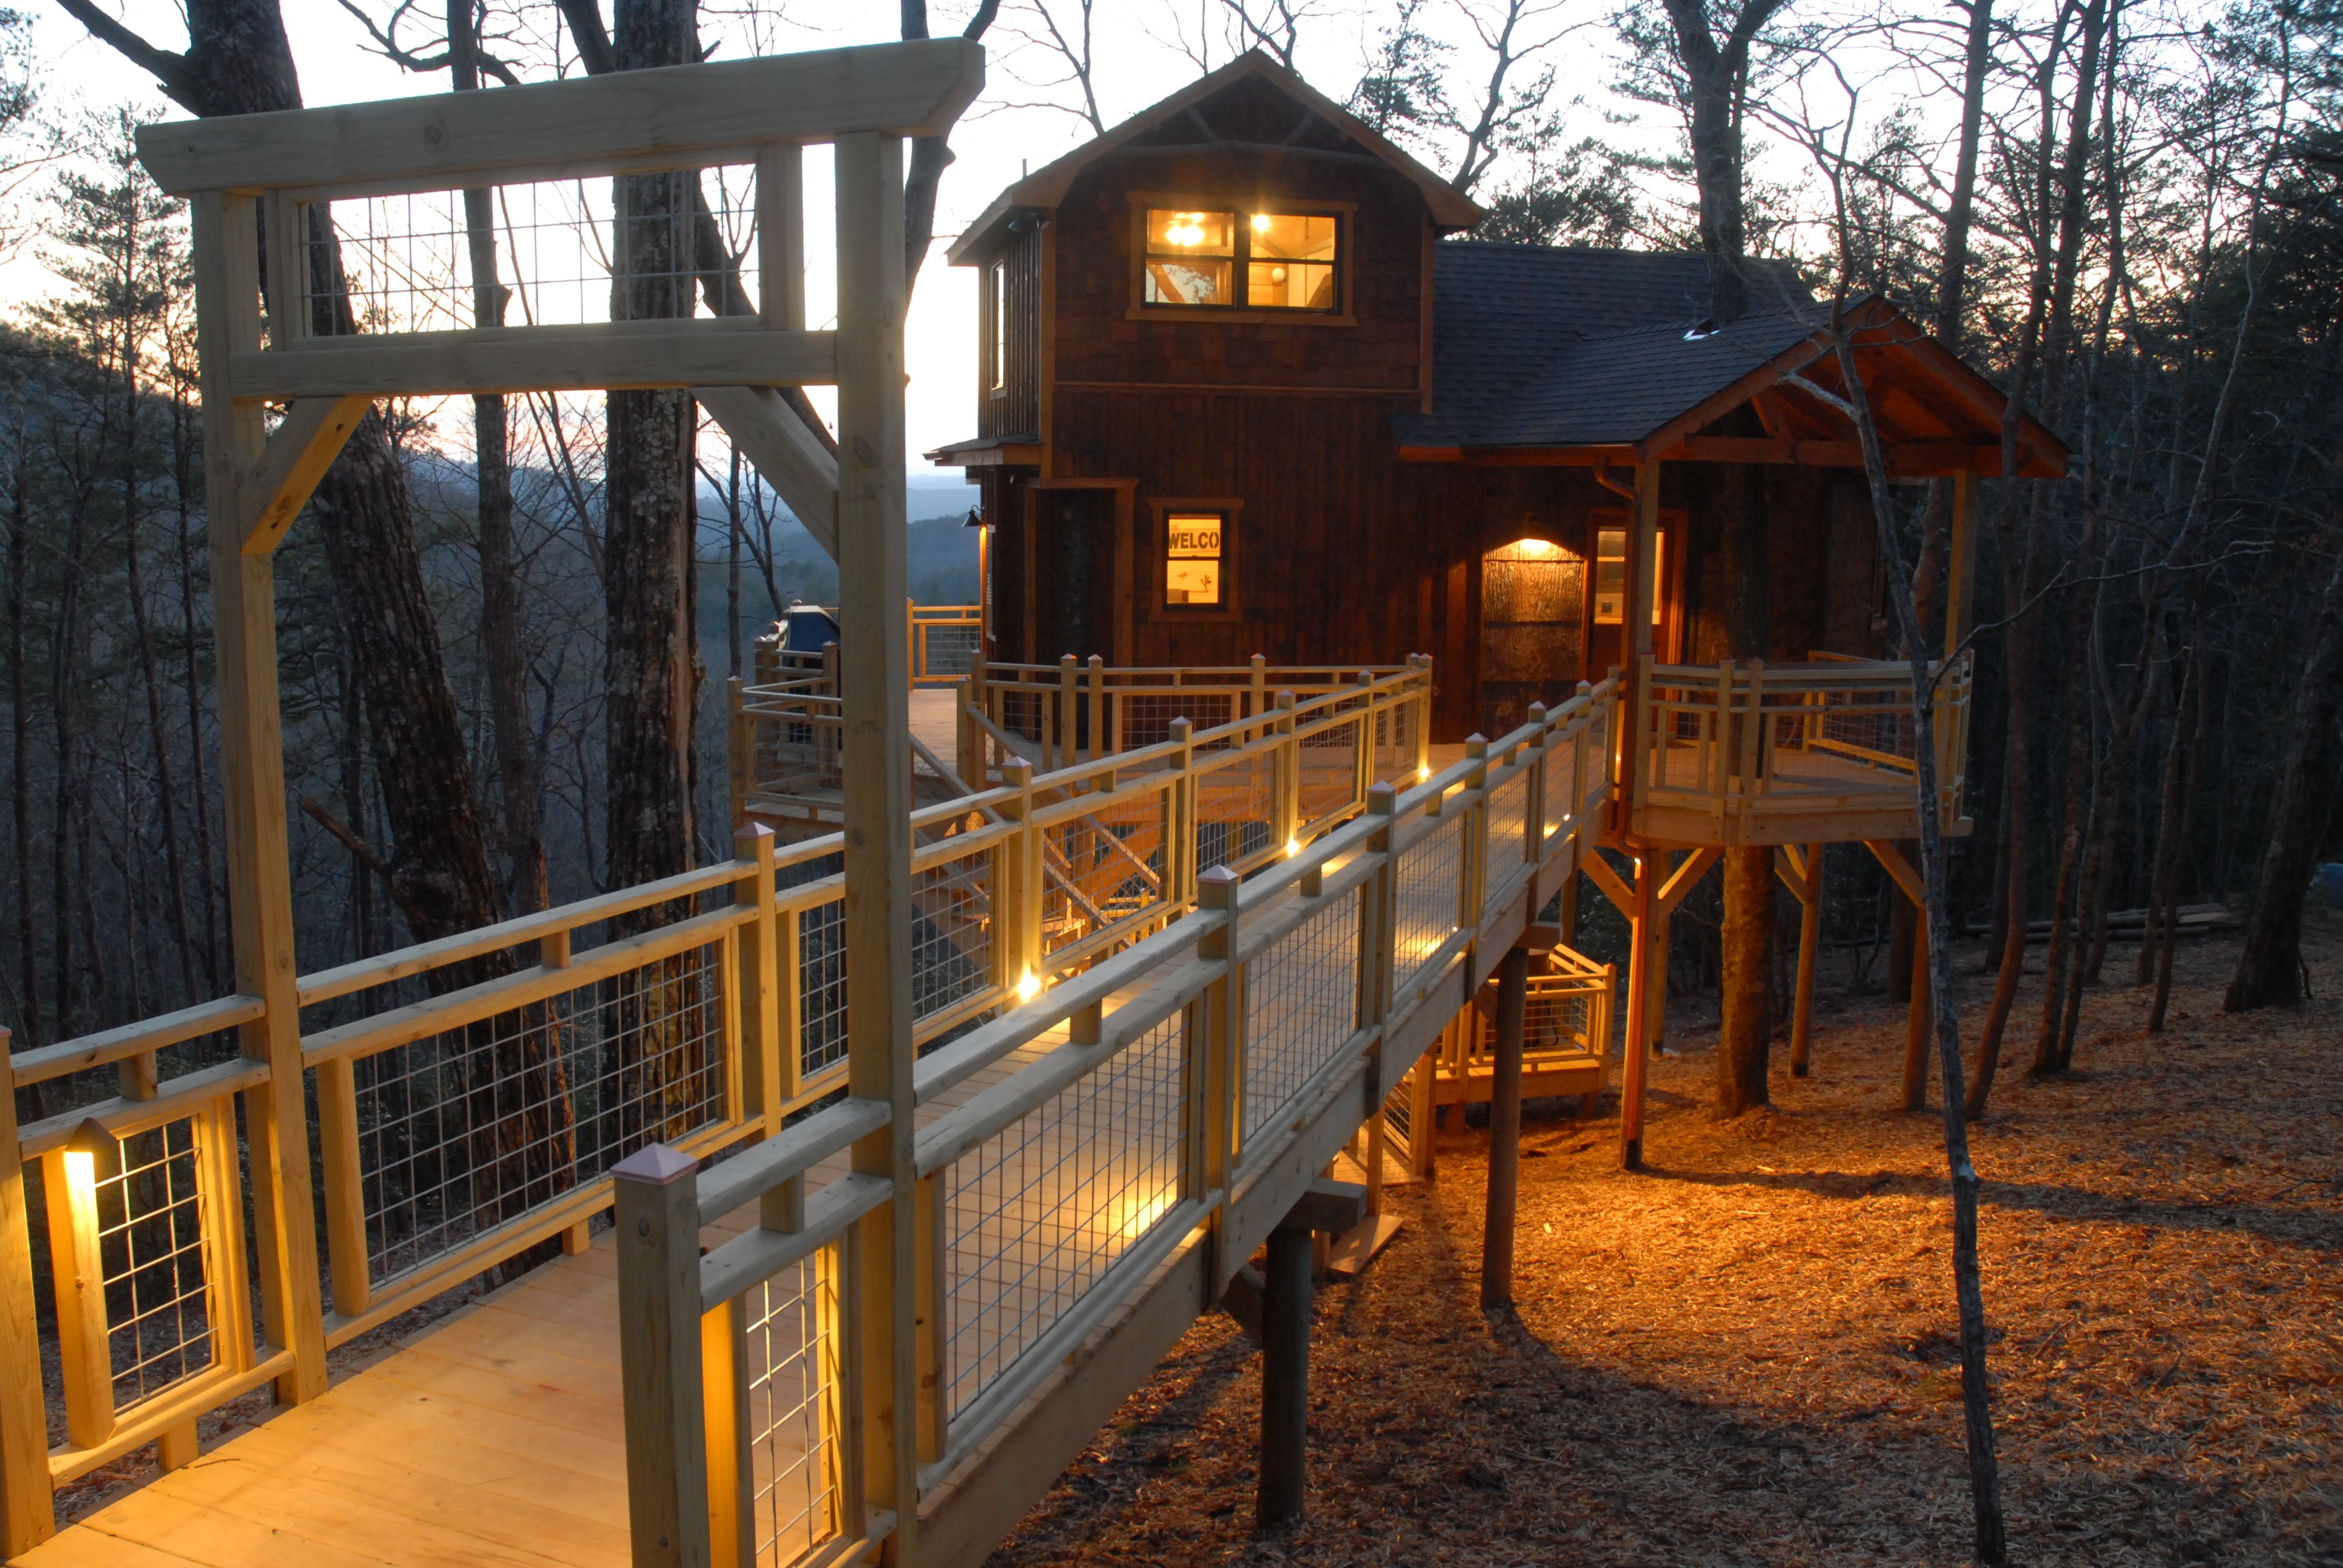 Stay In A Treehouse For Your Next Vacation With Blue Ridge Treehouse Rentals In Beautiful Blue Ridg Tree House Stay In A Treehouse Blue Ridge Mountains Georgia